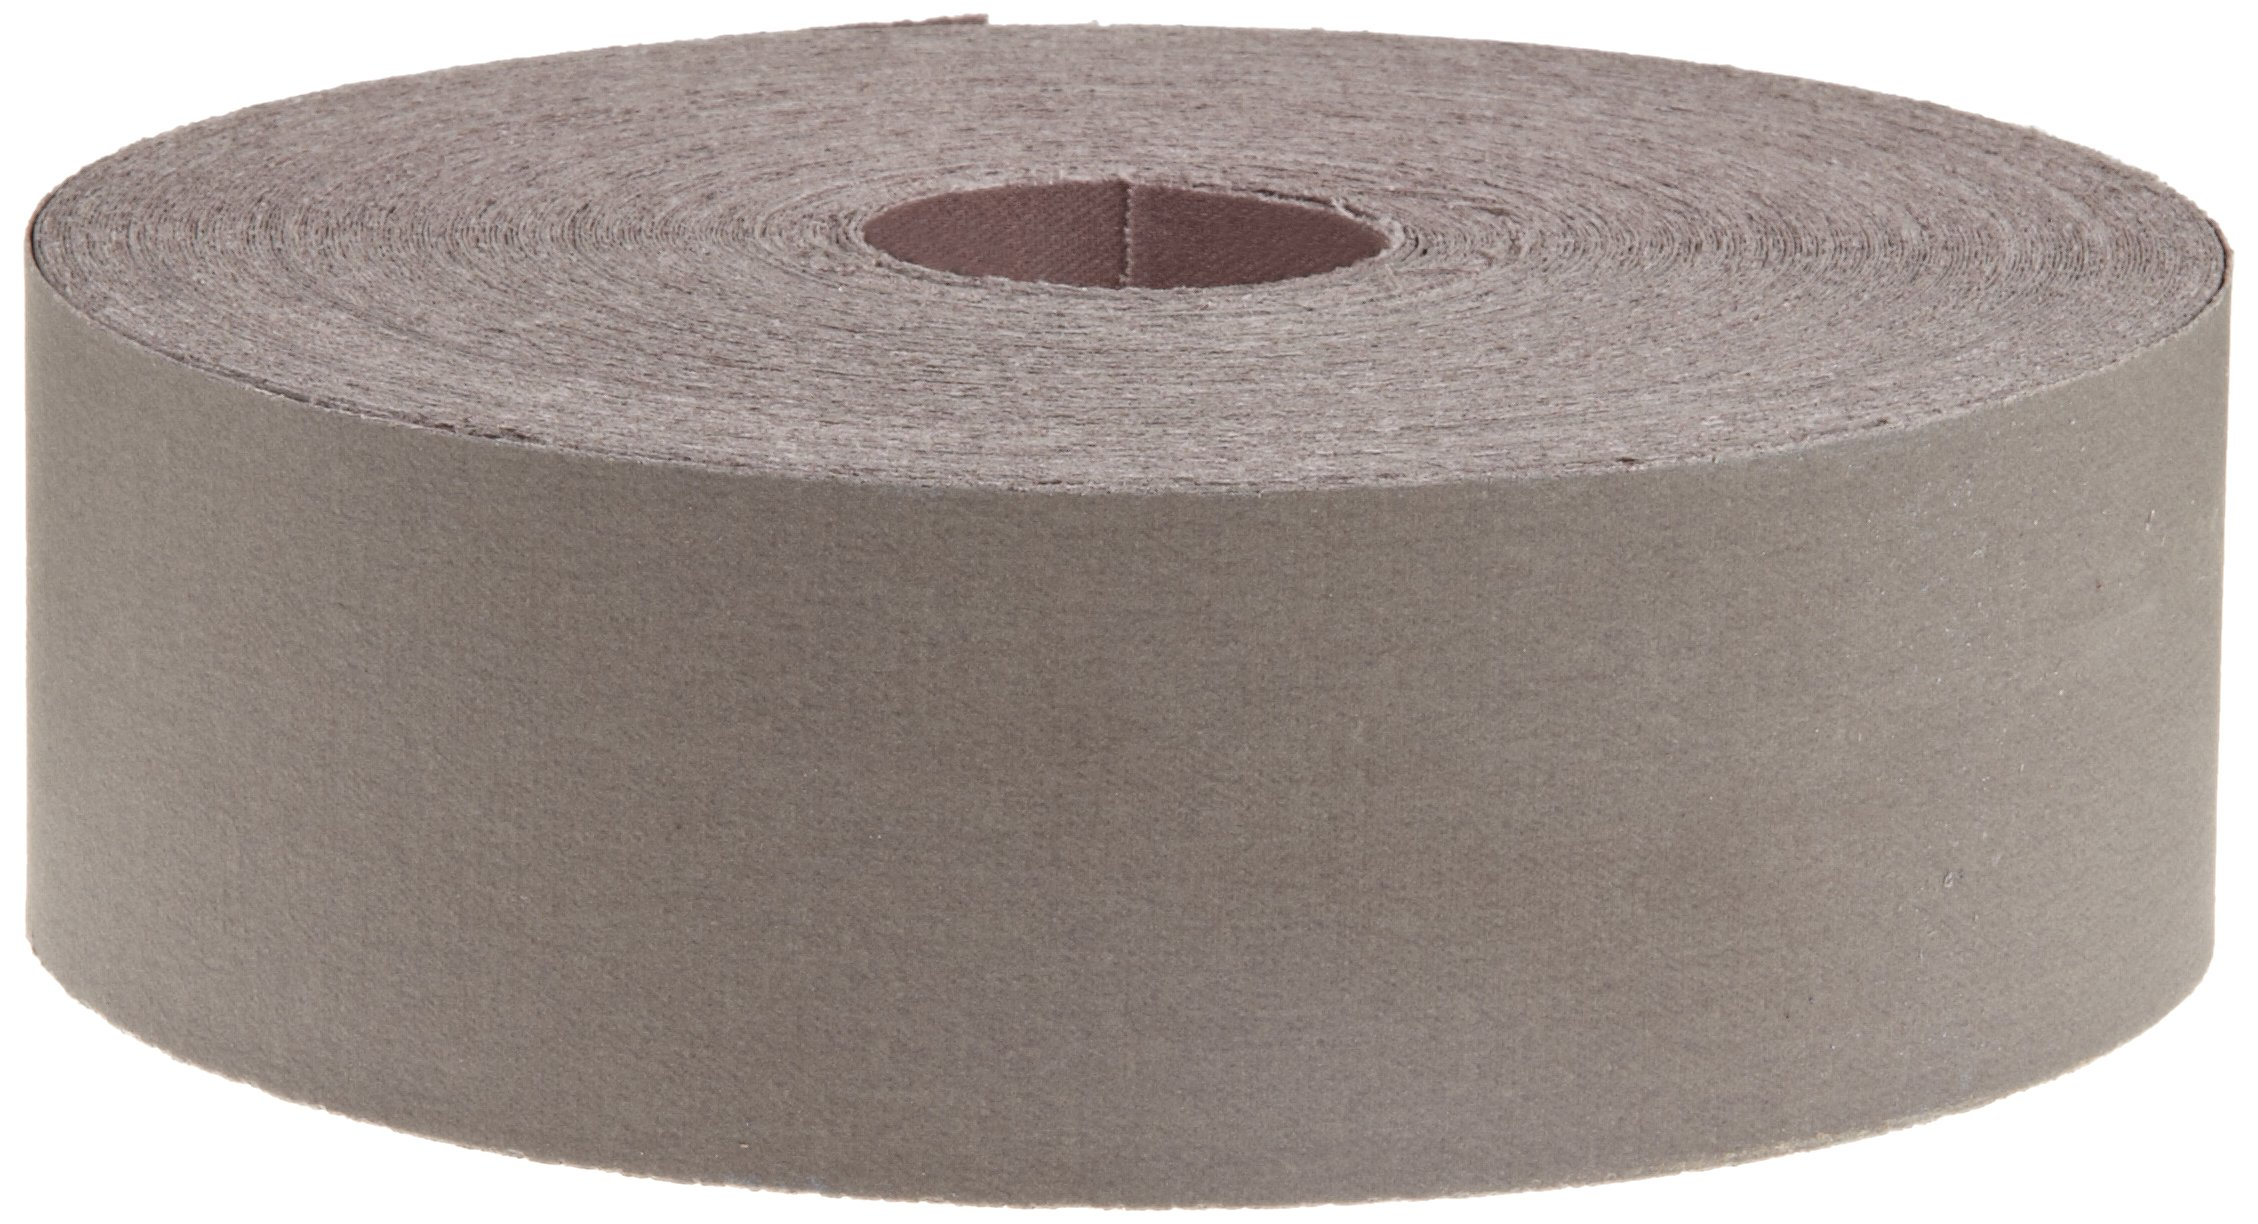 3M Utility Cloth Roll 211K, Aluminum Oxide, 2'' Width x 50yd Length, 500 Grit (Pack of 1)